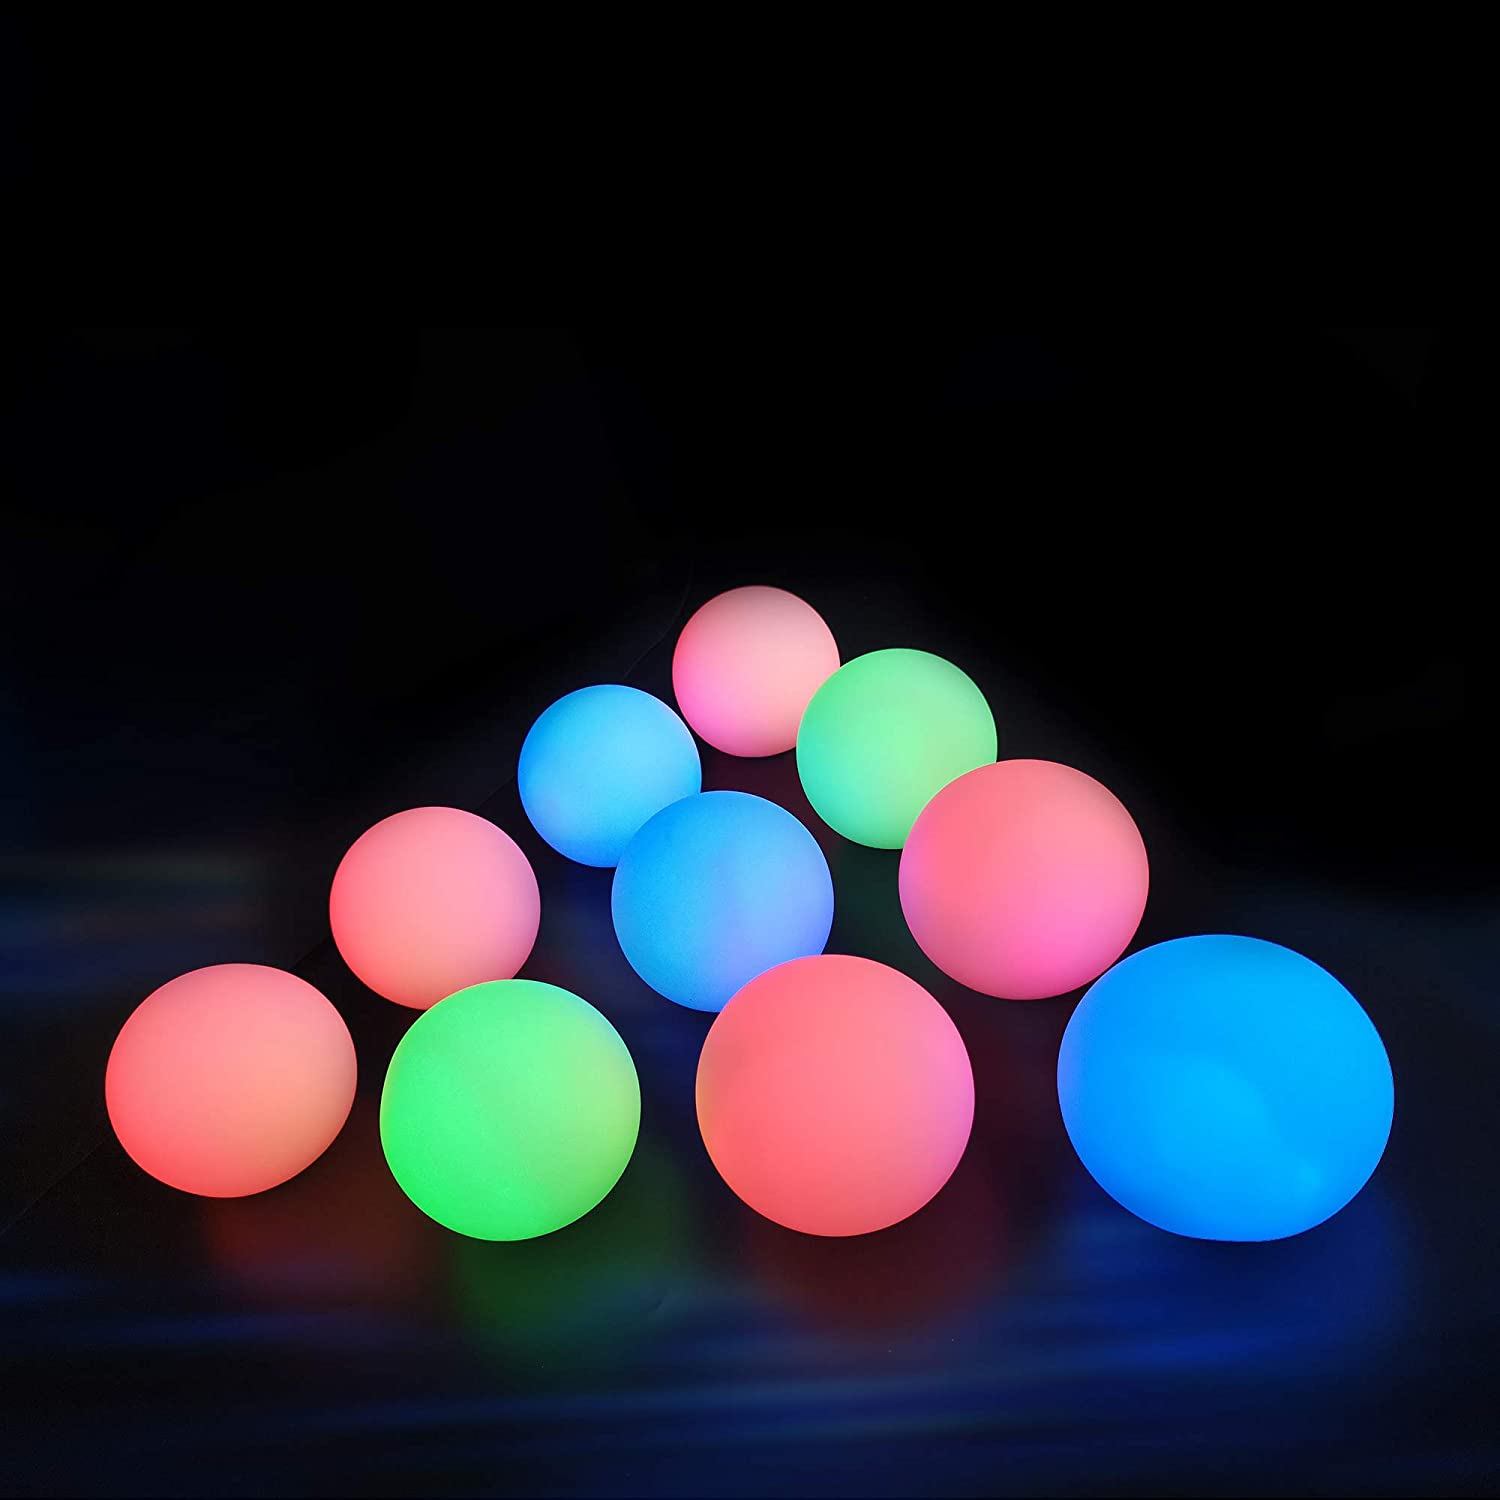 Chakev Floating Pool Lights 10 Pack, 16 Colors Remote Control Pond LED Ball Lights with Timer, 3 inch Waterproof Glow Orb Hot Tub Light Kids Night Light with 6PCS Extra Batteries for Pool Party Decor